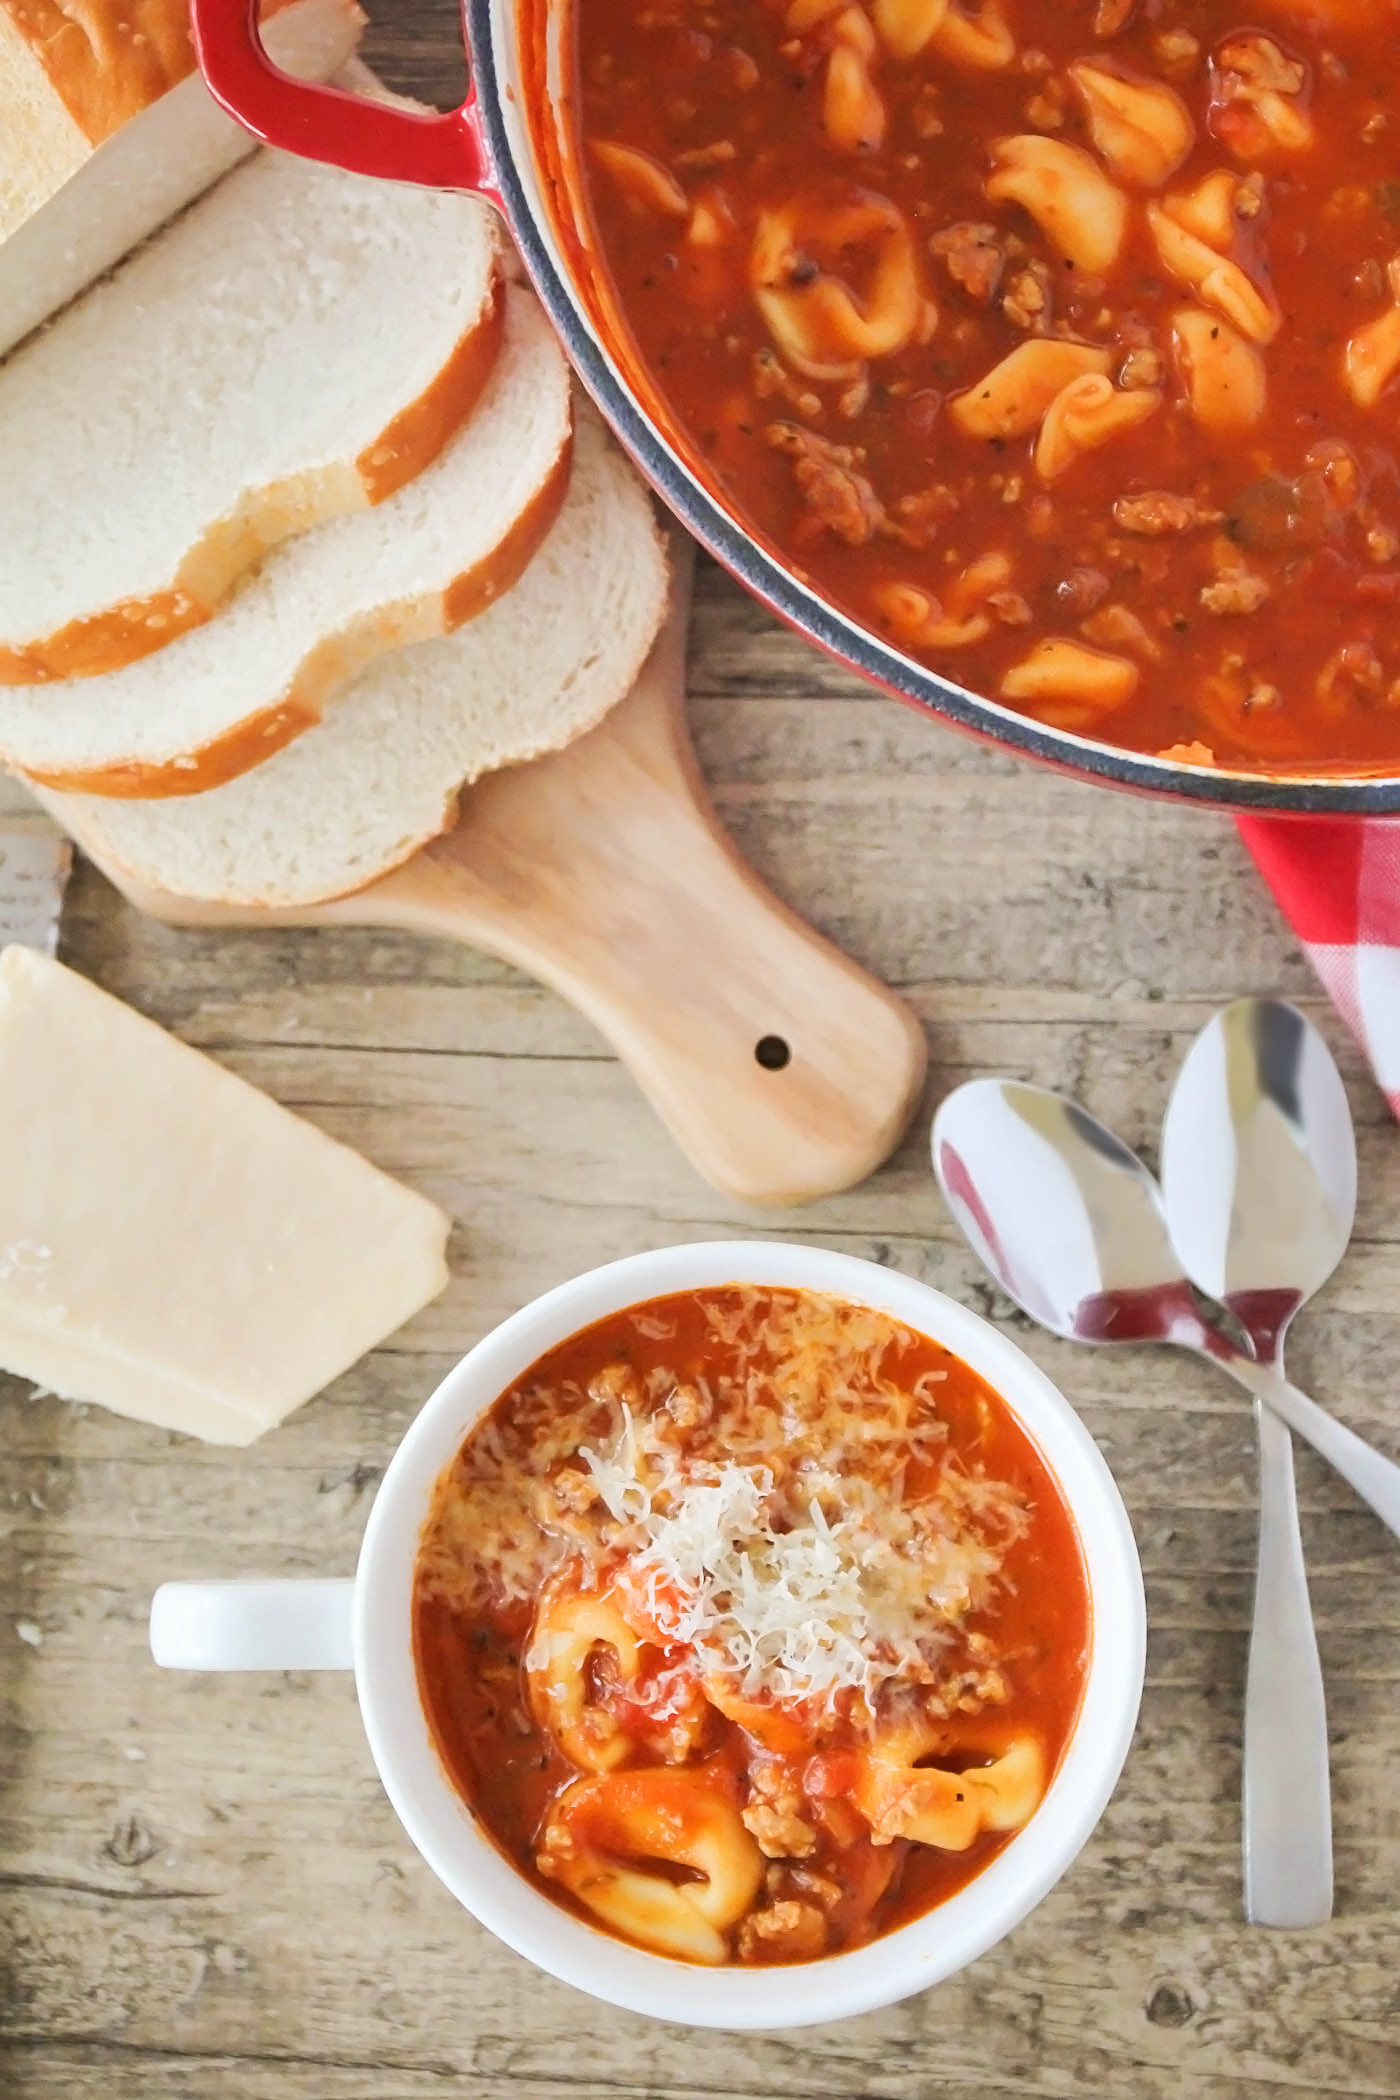 Short on time and need a hearty meal on the table? This Quick and Easy Tomato Tortellini Soup is your go-to for dinner!